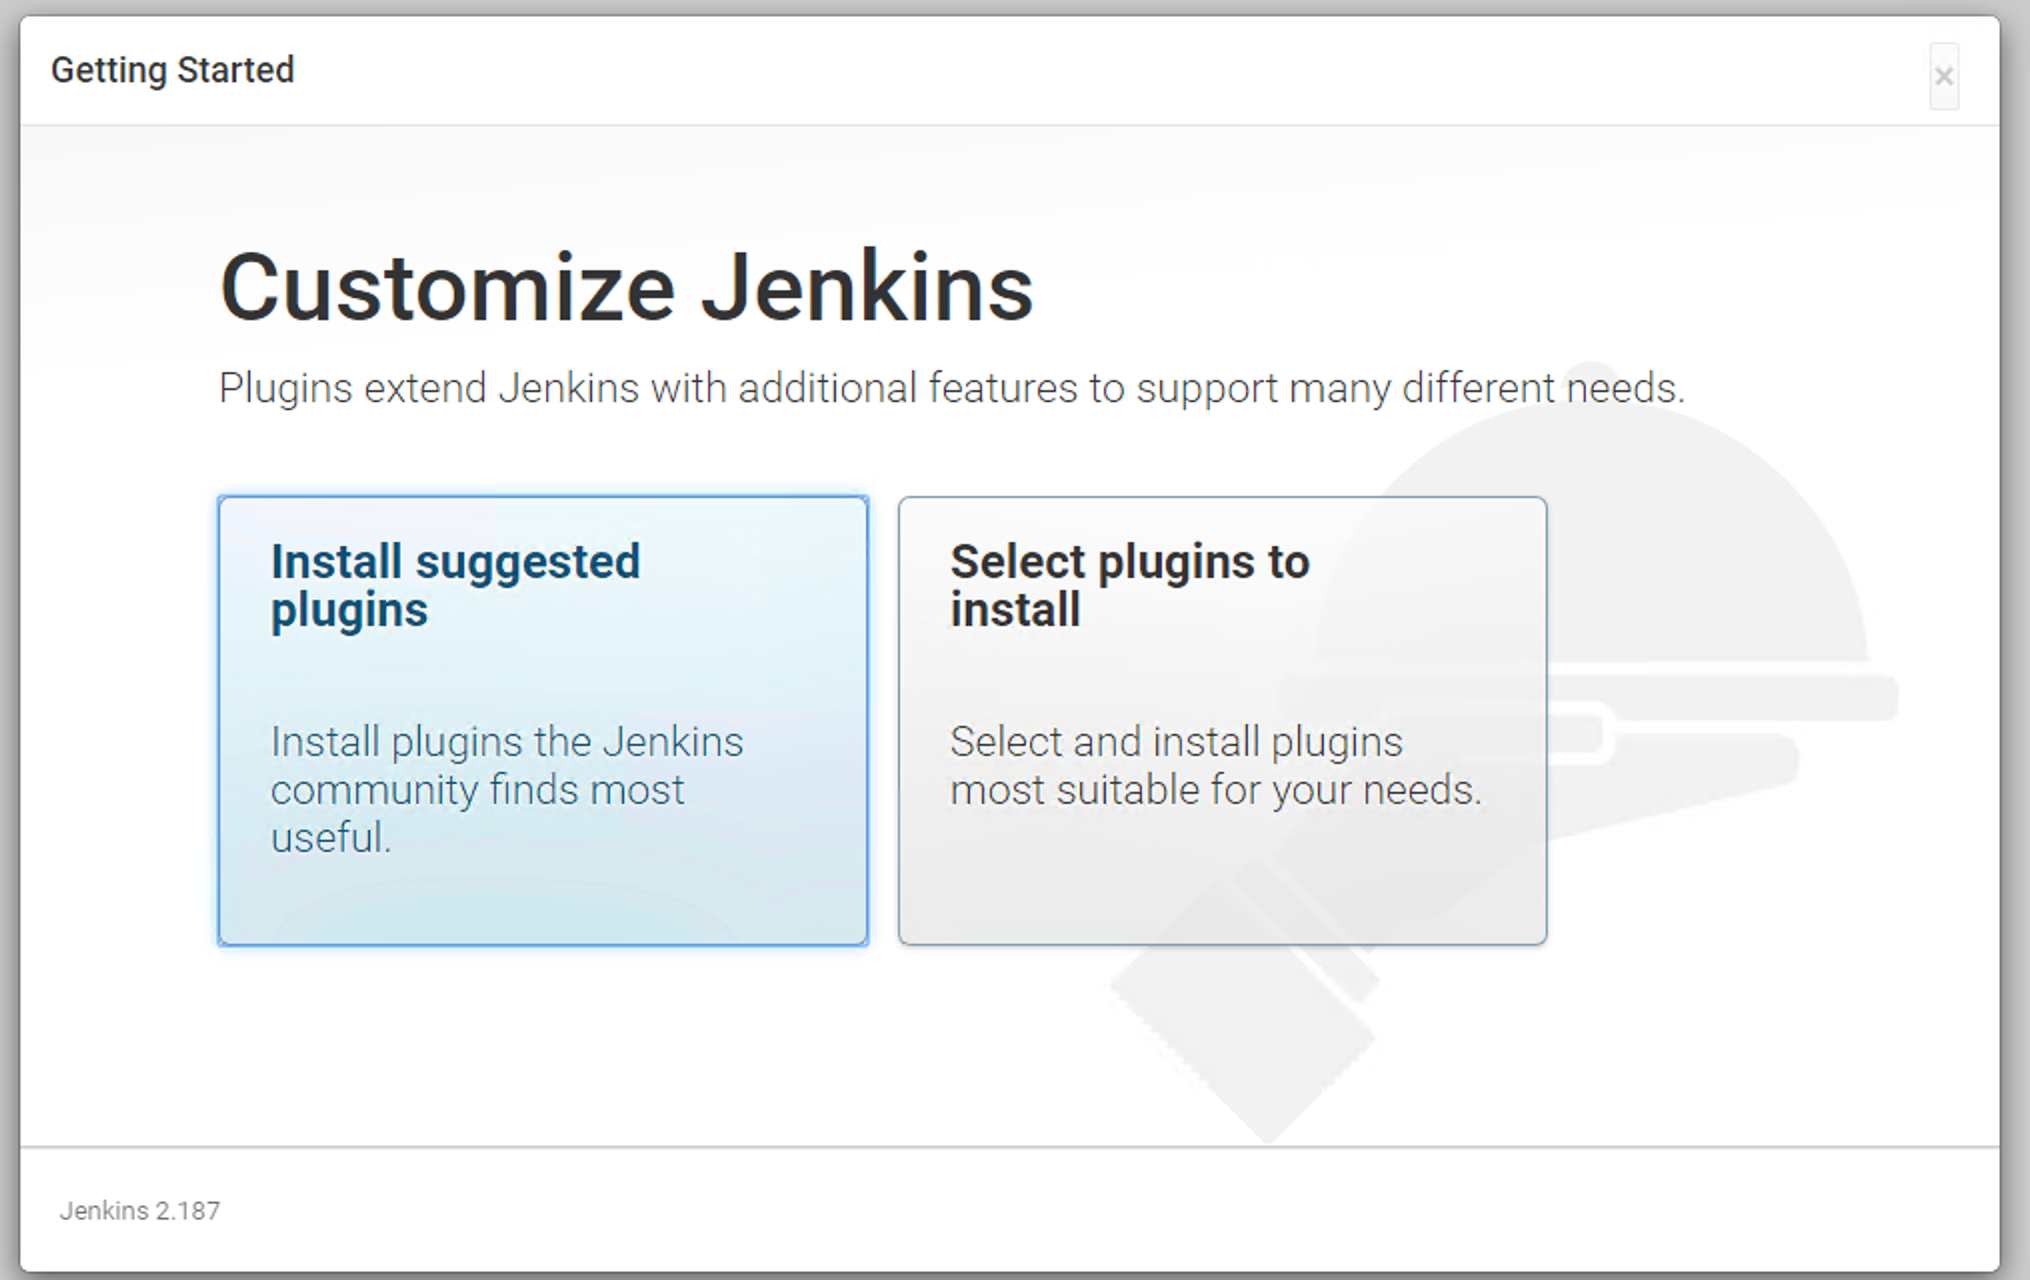 Choose to install suggested plugins or select plugins to install.